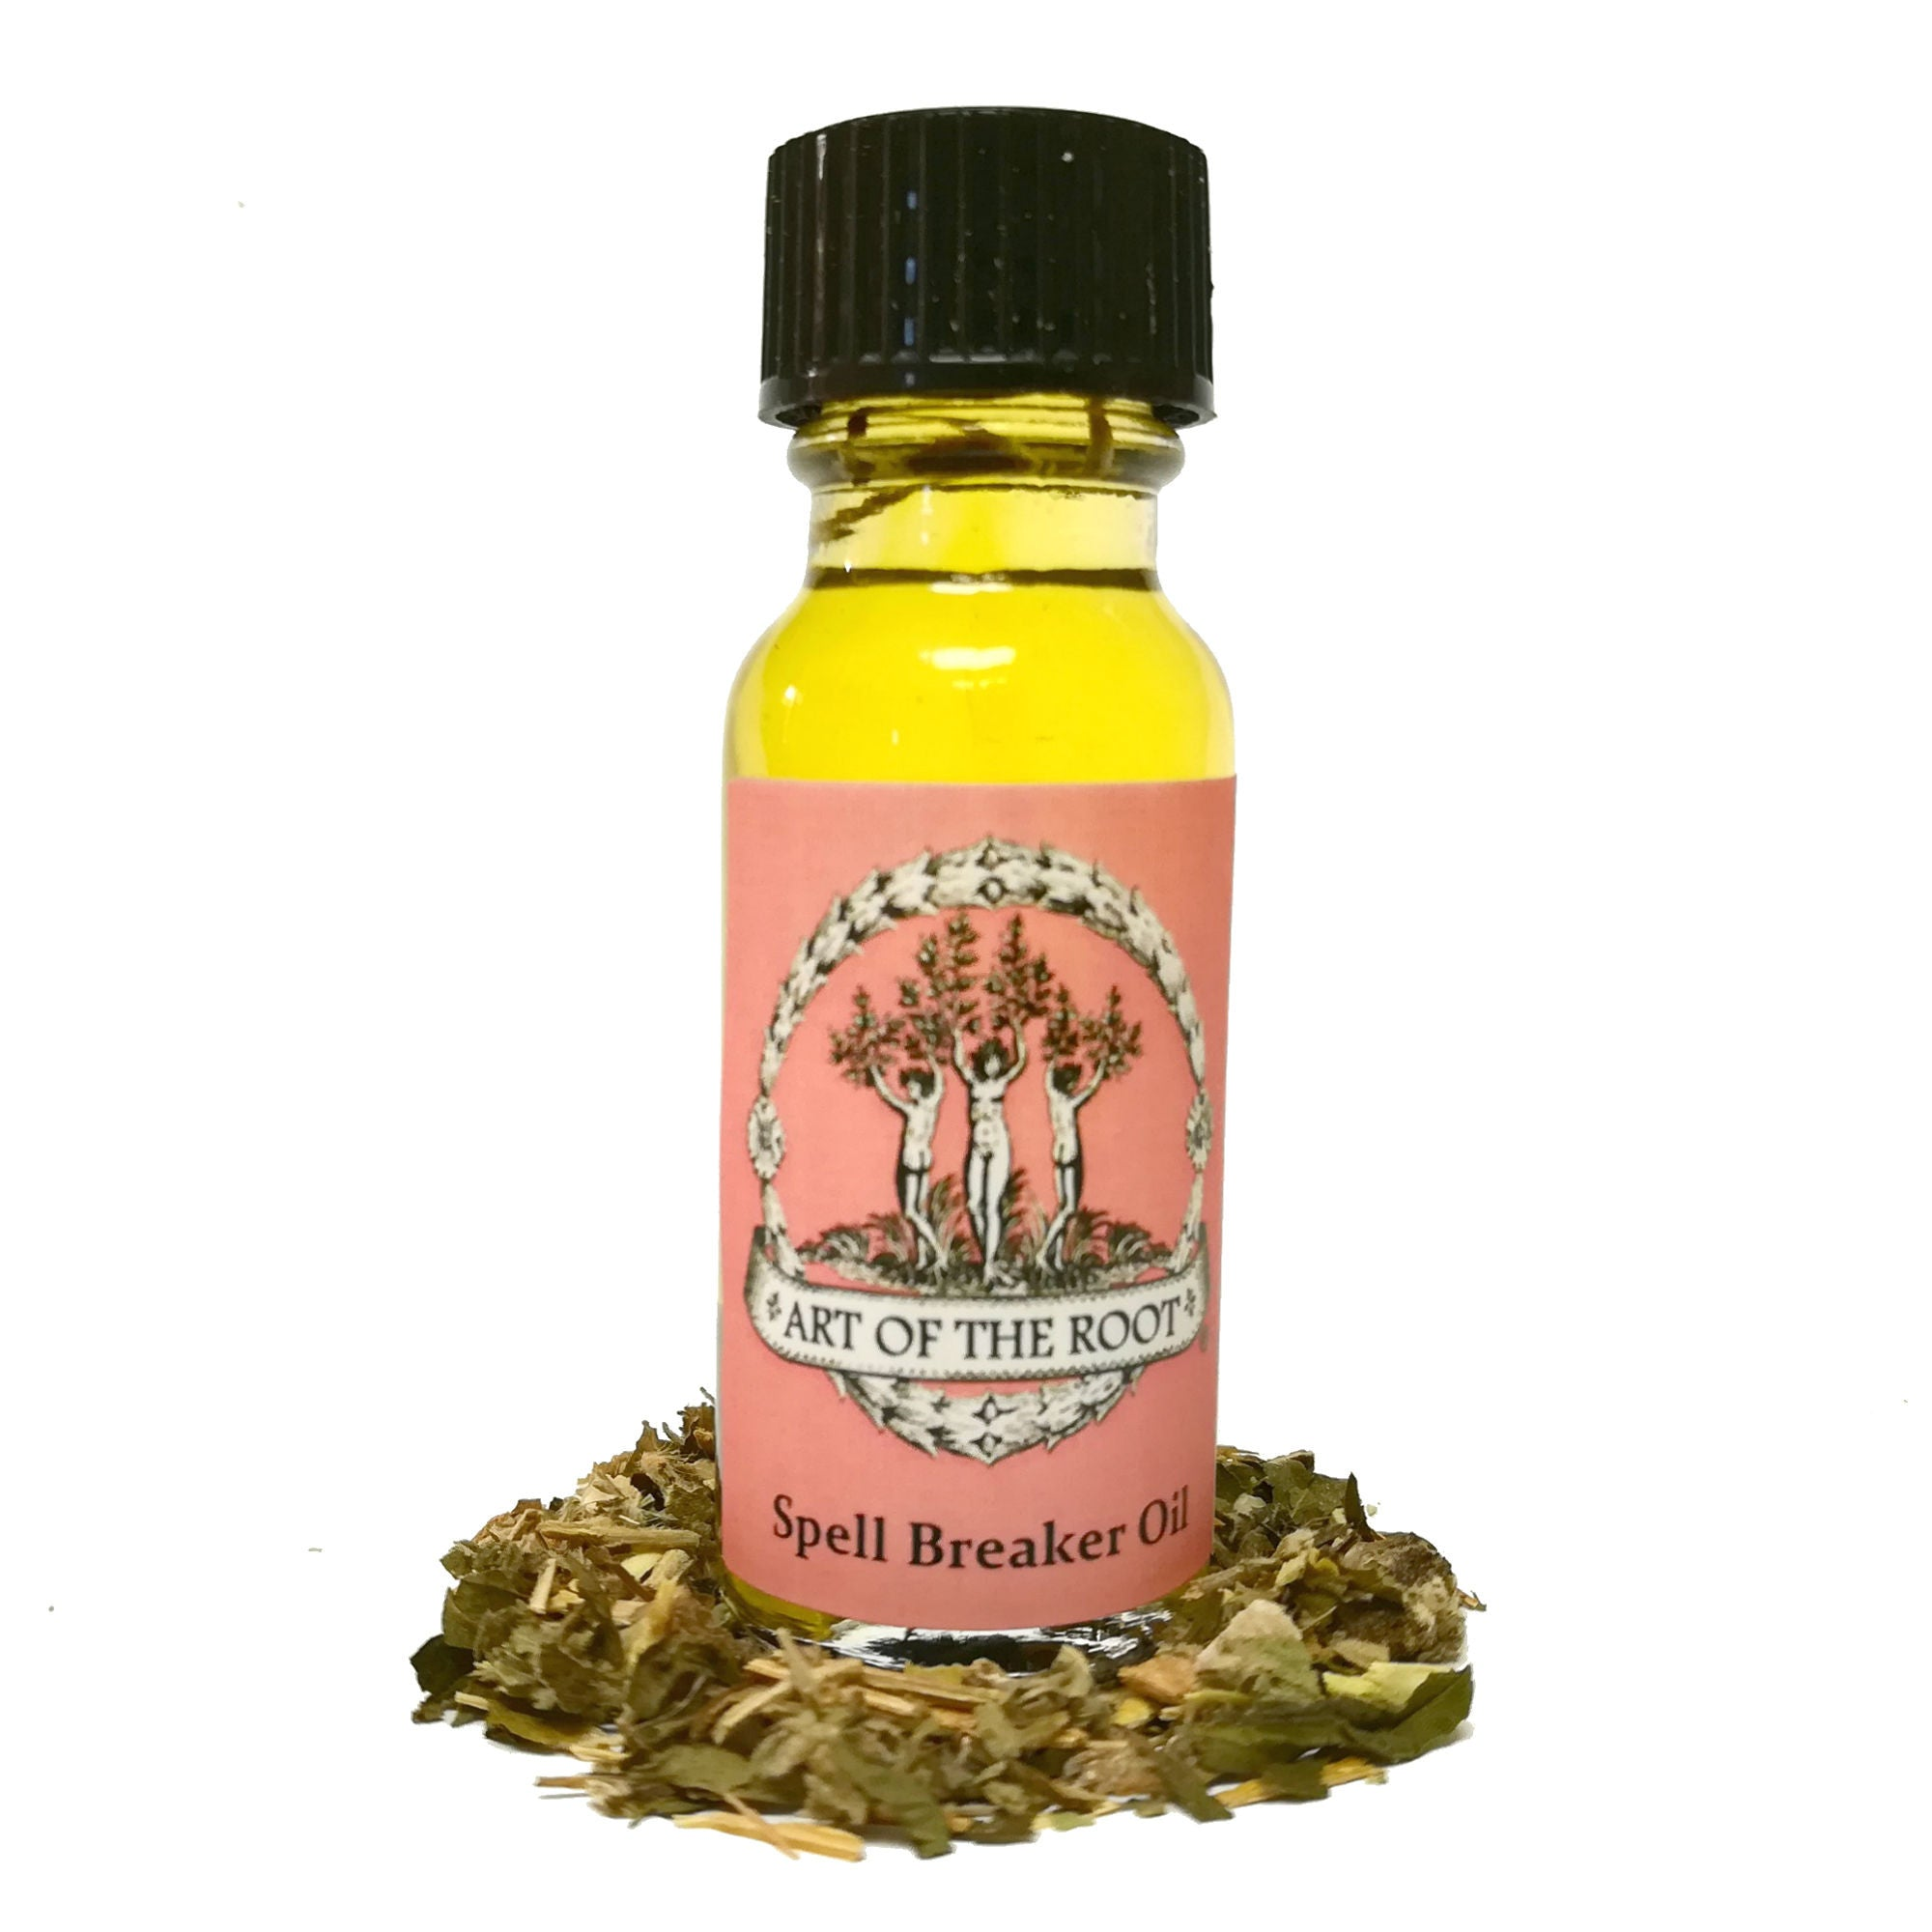 Spell Breaker Oil for Hexes, Curses, Jinxes and Spells